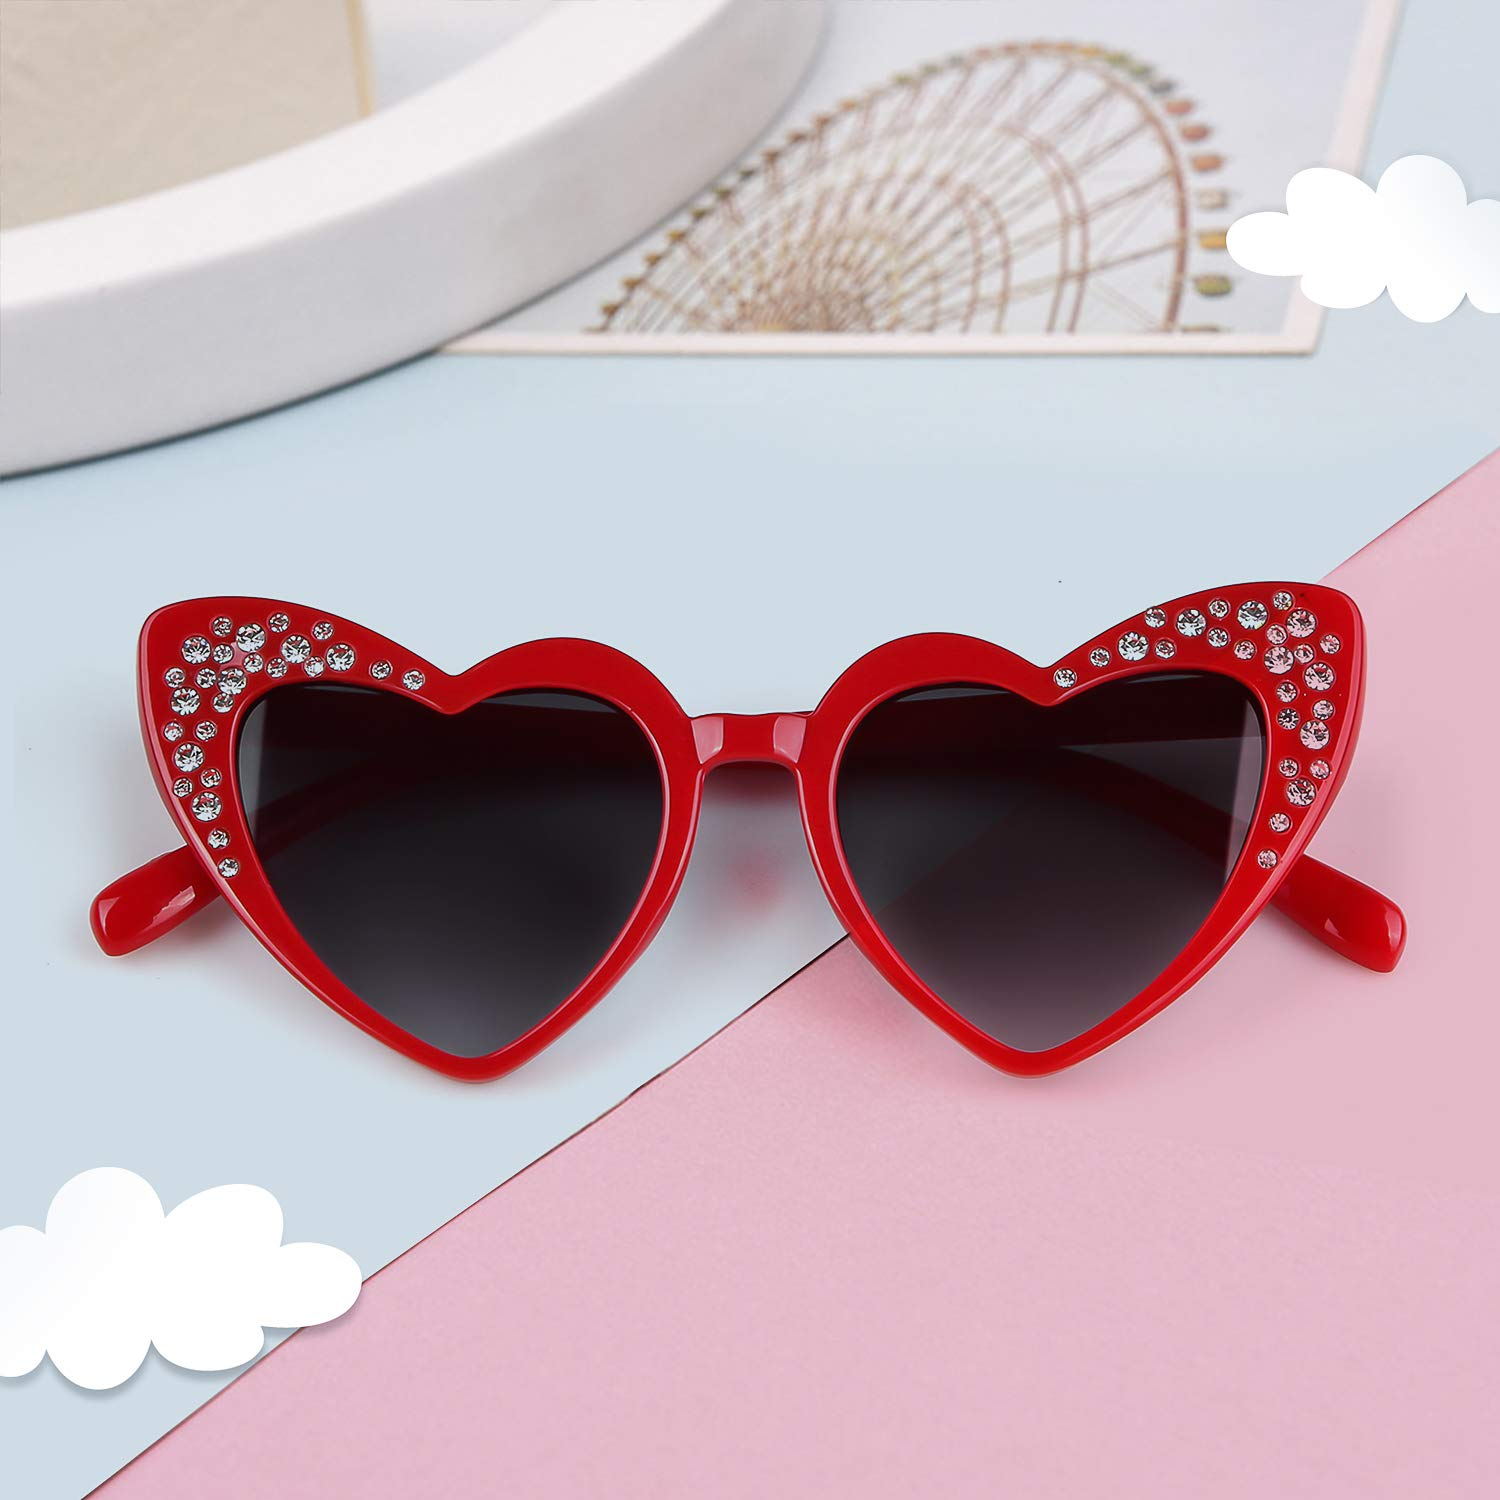 Love Heart Shaped Sunglasses Women Vintage Christmas Giftv For Girls (red, gray) by ADEWU (Image #3)